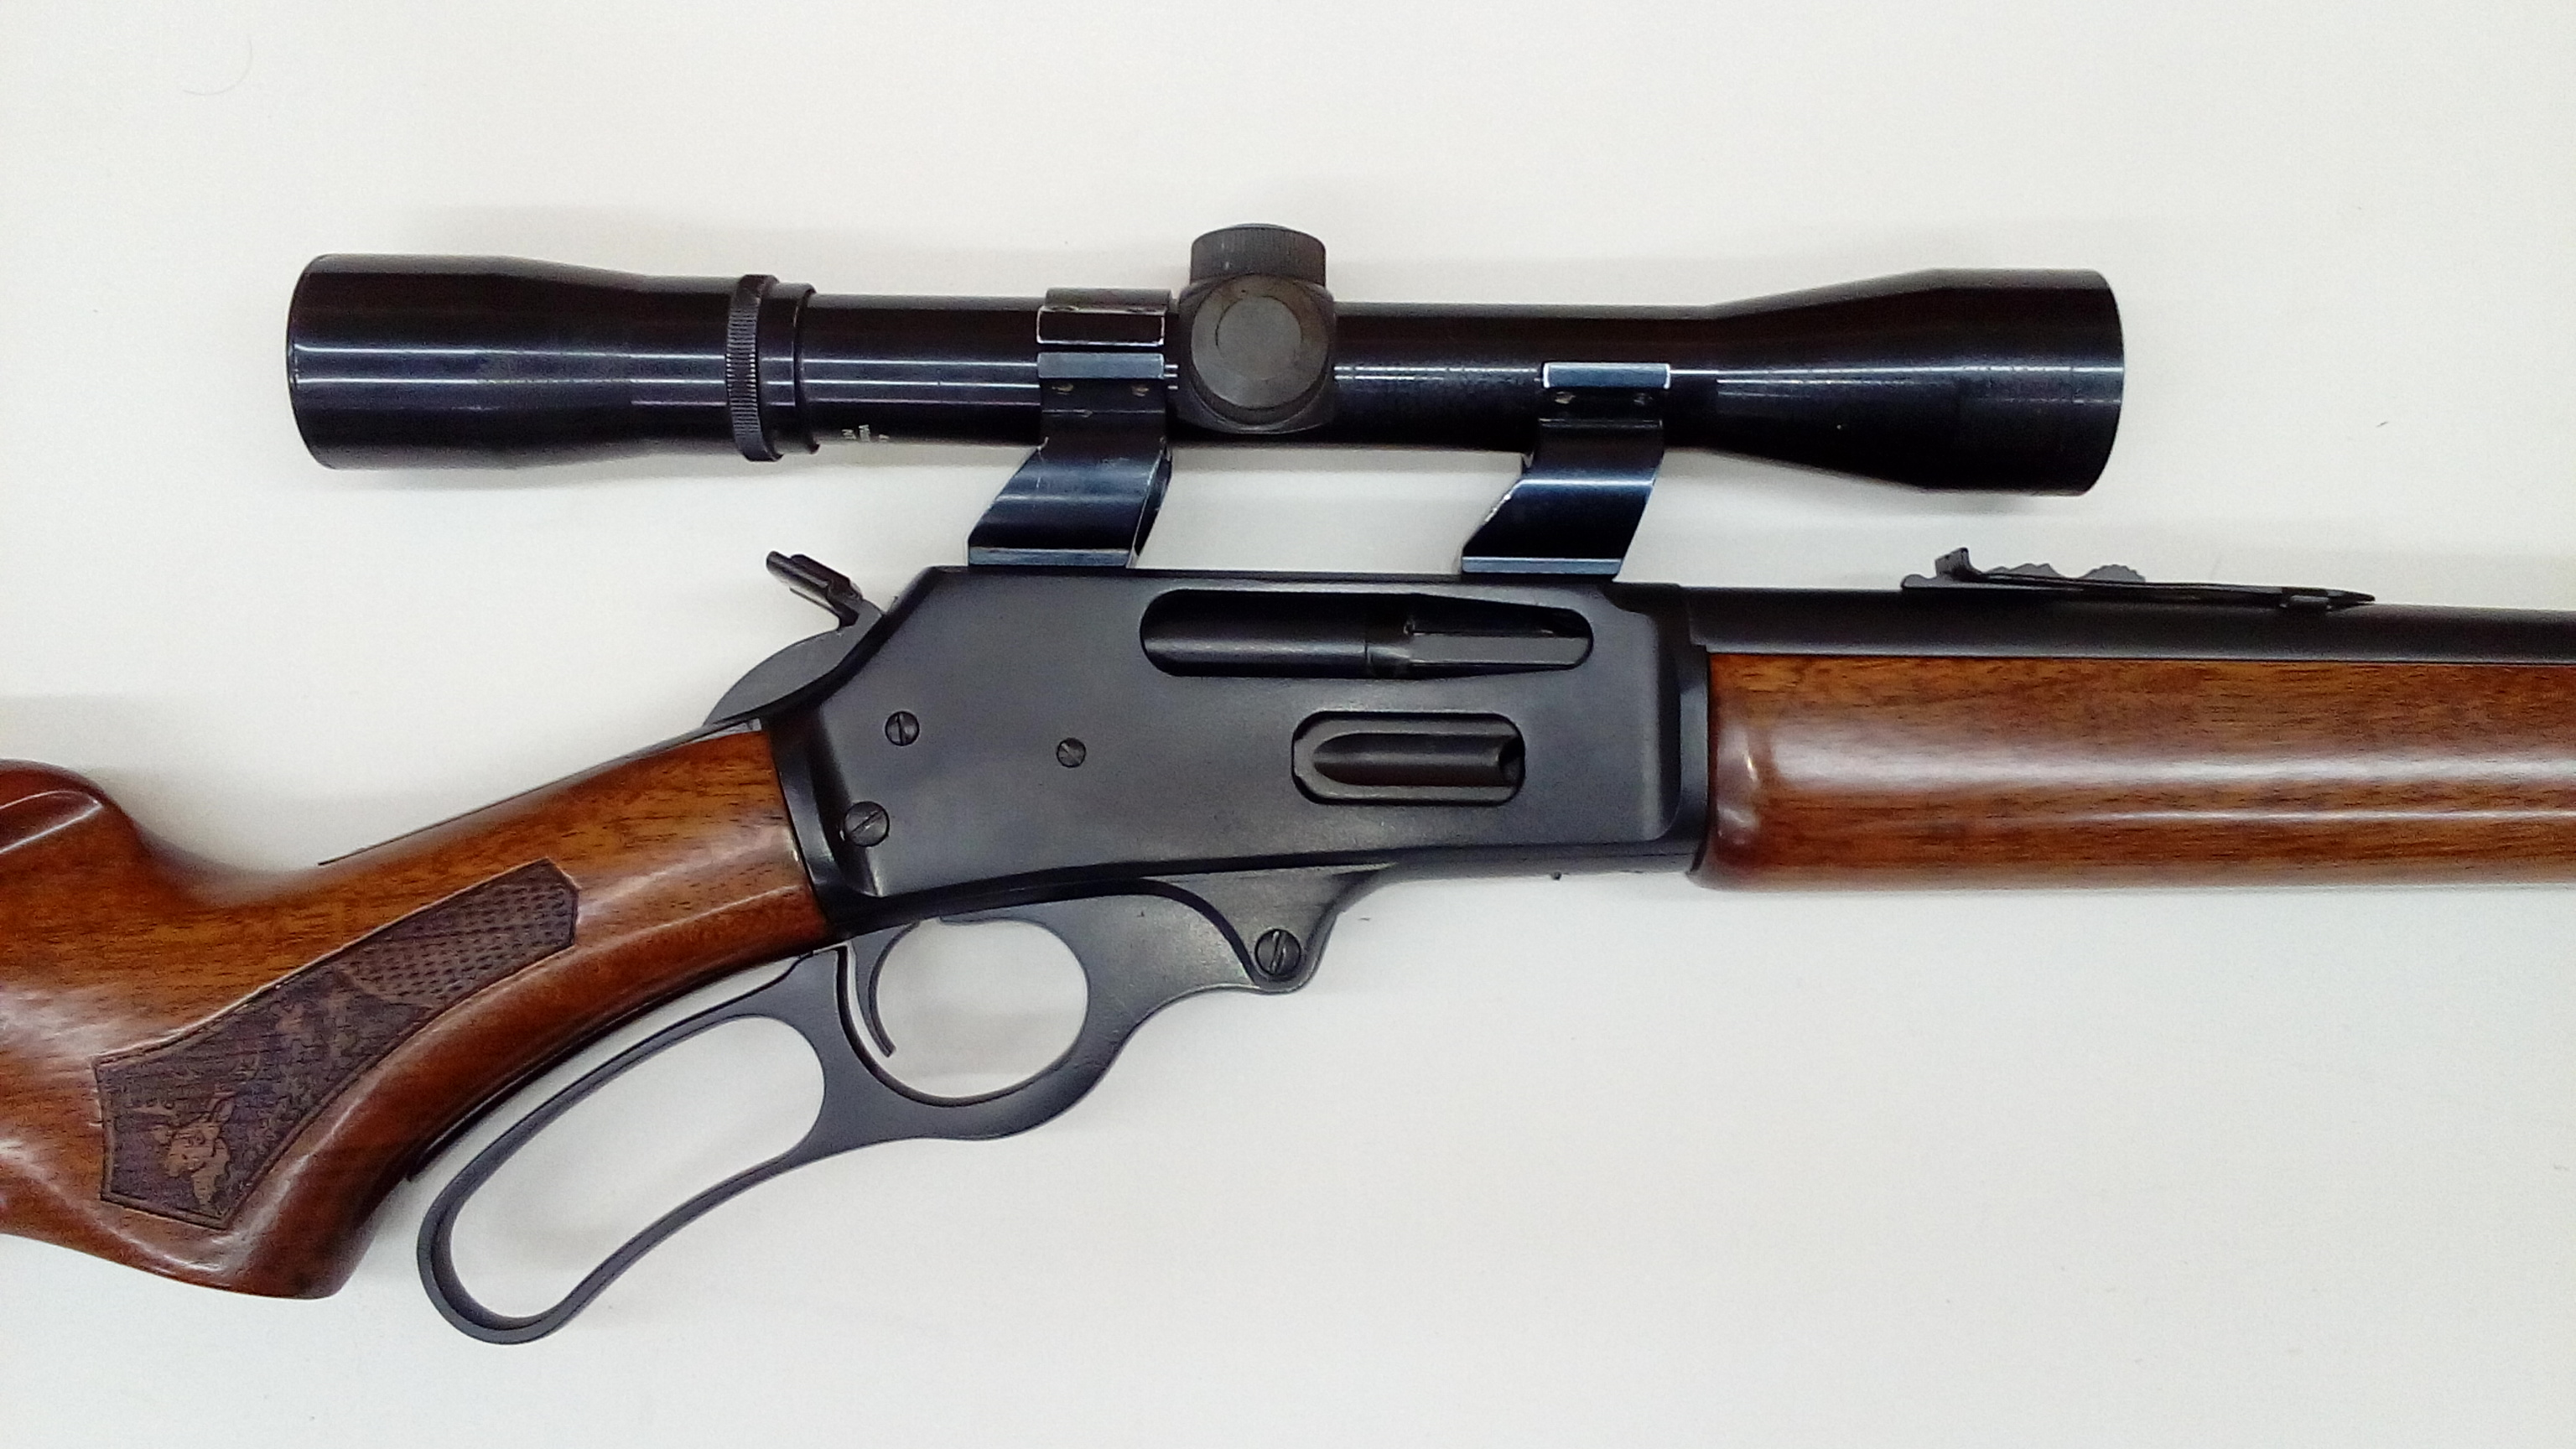 Marlin 30-30 cerakoted in graphite black, this gun was also in a fire.